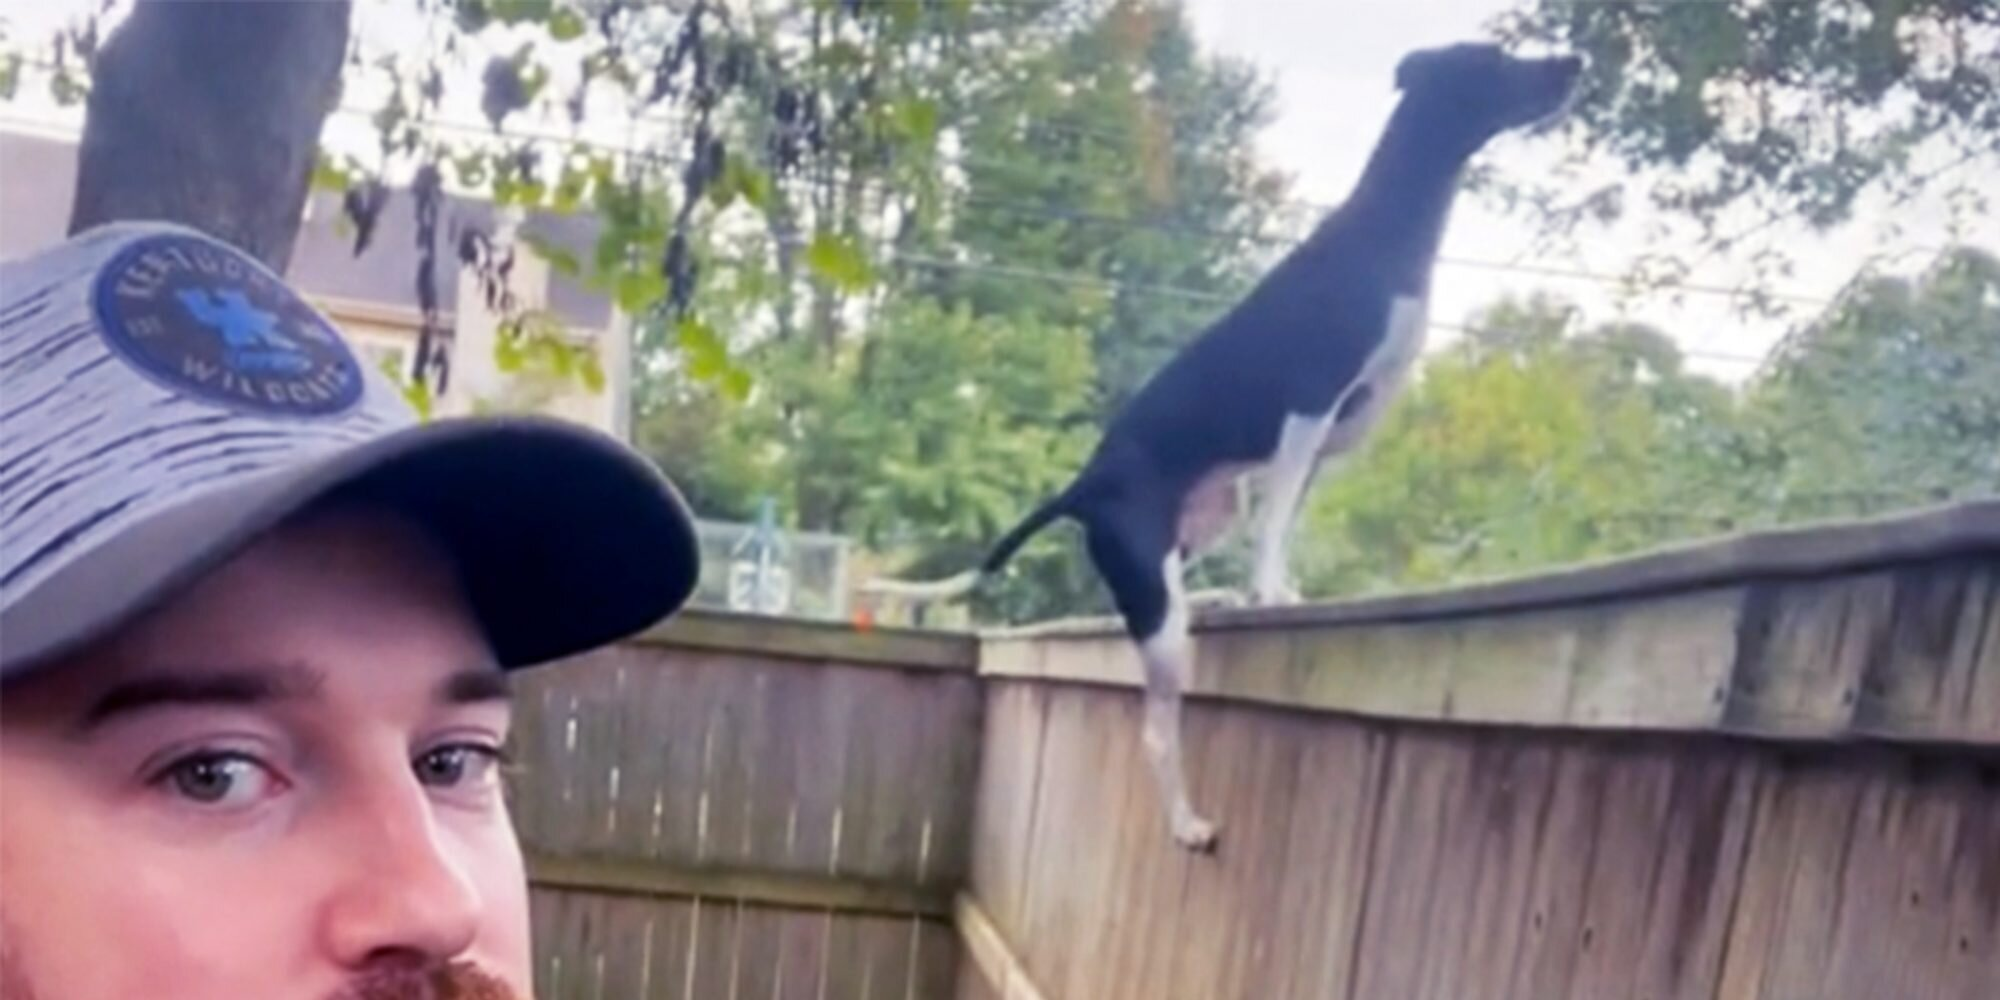 Watch This Incredibly Spry Dog Scale Her Huge Backyard Fence Like It's Nothing in Amazing TikTok